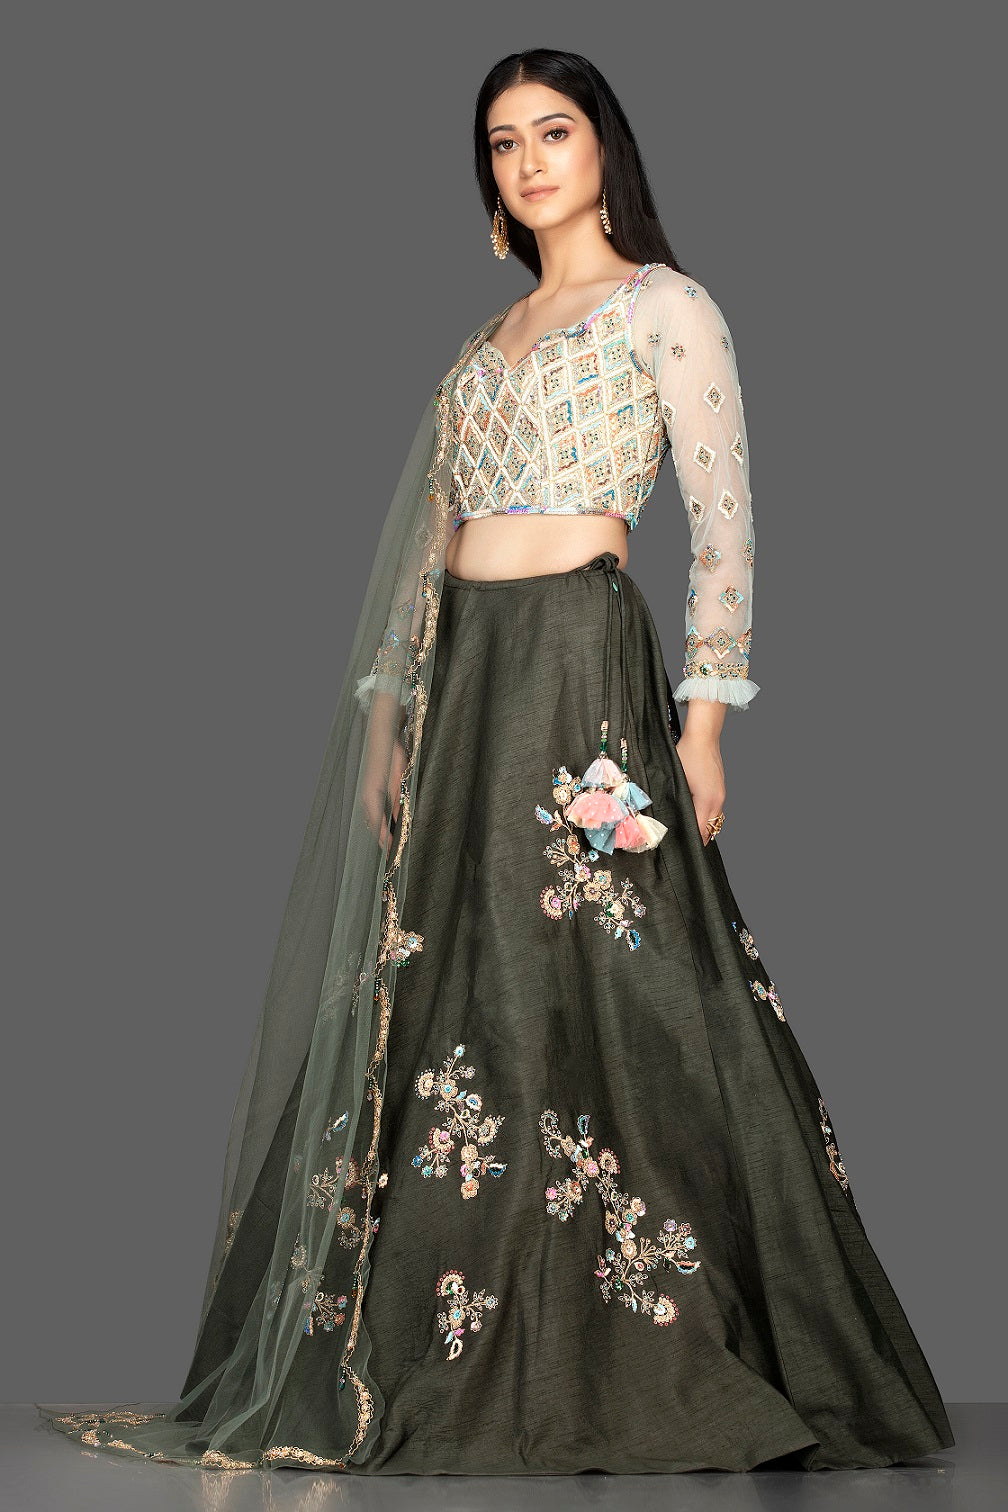 Buy beautiful dark grey embroidered raw silk lehenga online in USA with net dupatta. Look radiant on weddings and special occasions in splendid designer lehengas crafted with finest embroideries and stunning silhouettes from Pure Elegance Indian fashion boutique in USA.-full view